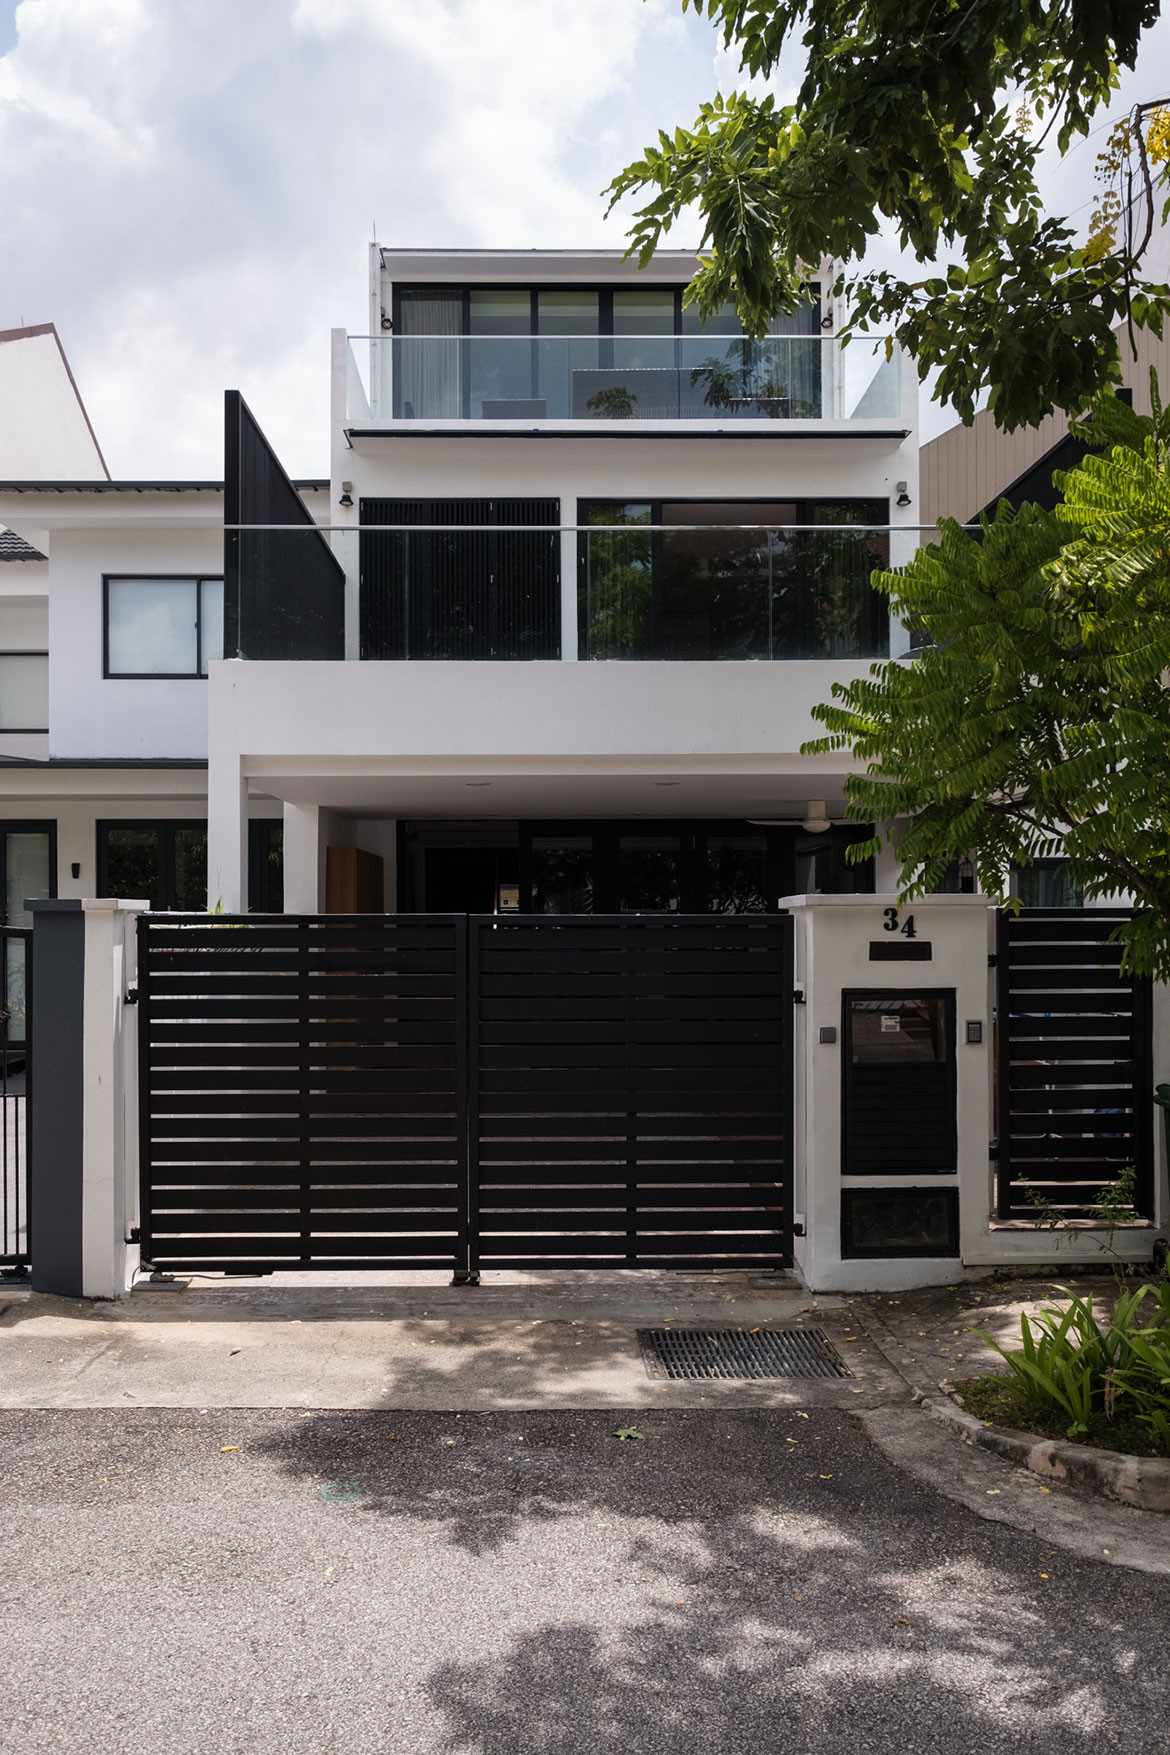 Produce Singapore family home entrance gate